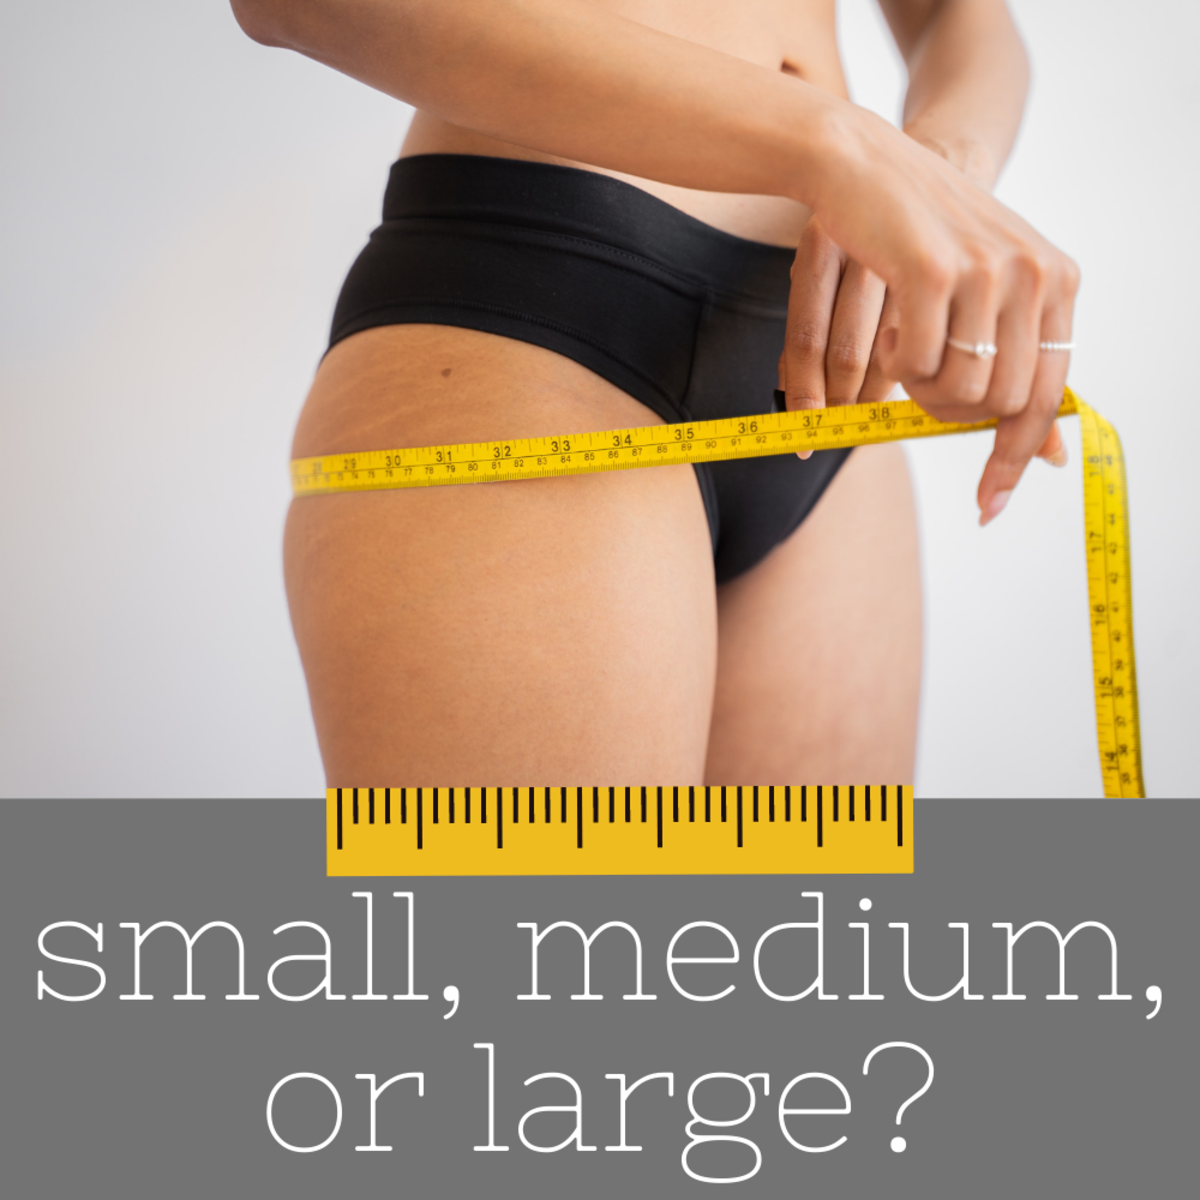 How big are S, M, L sizes for women?